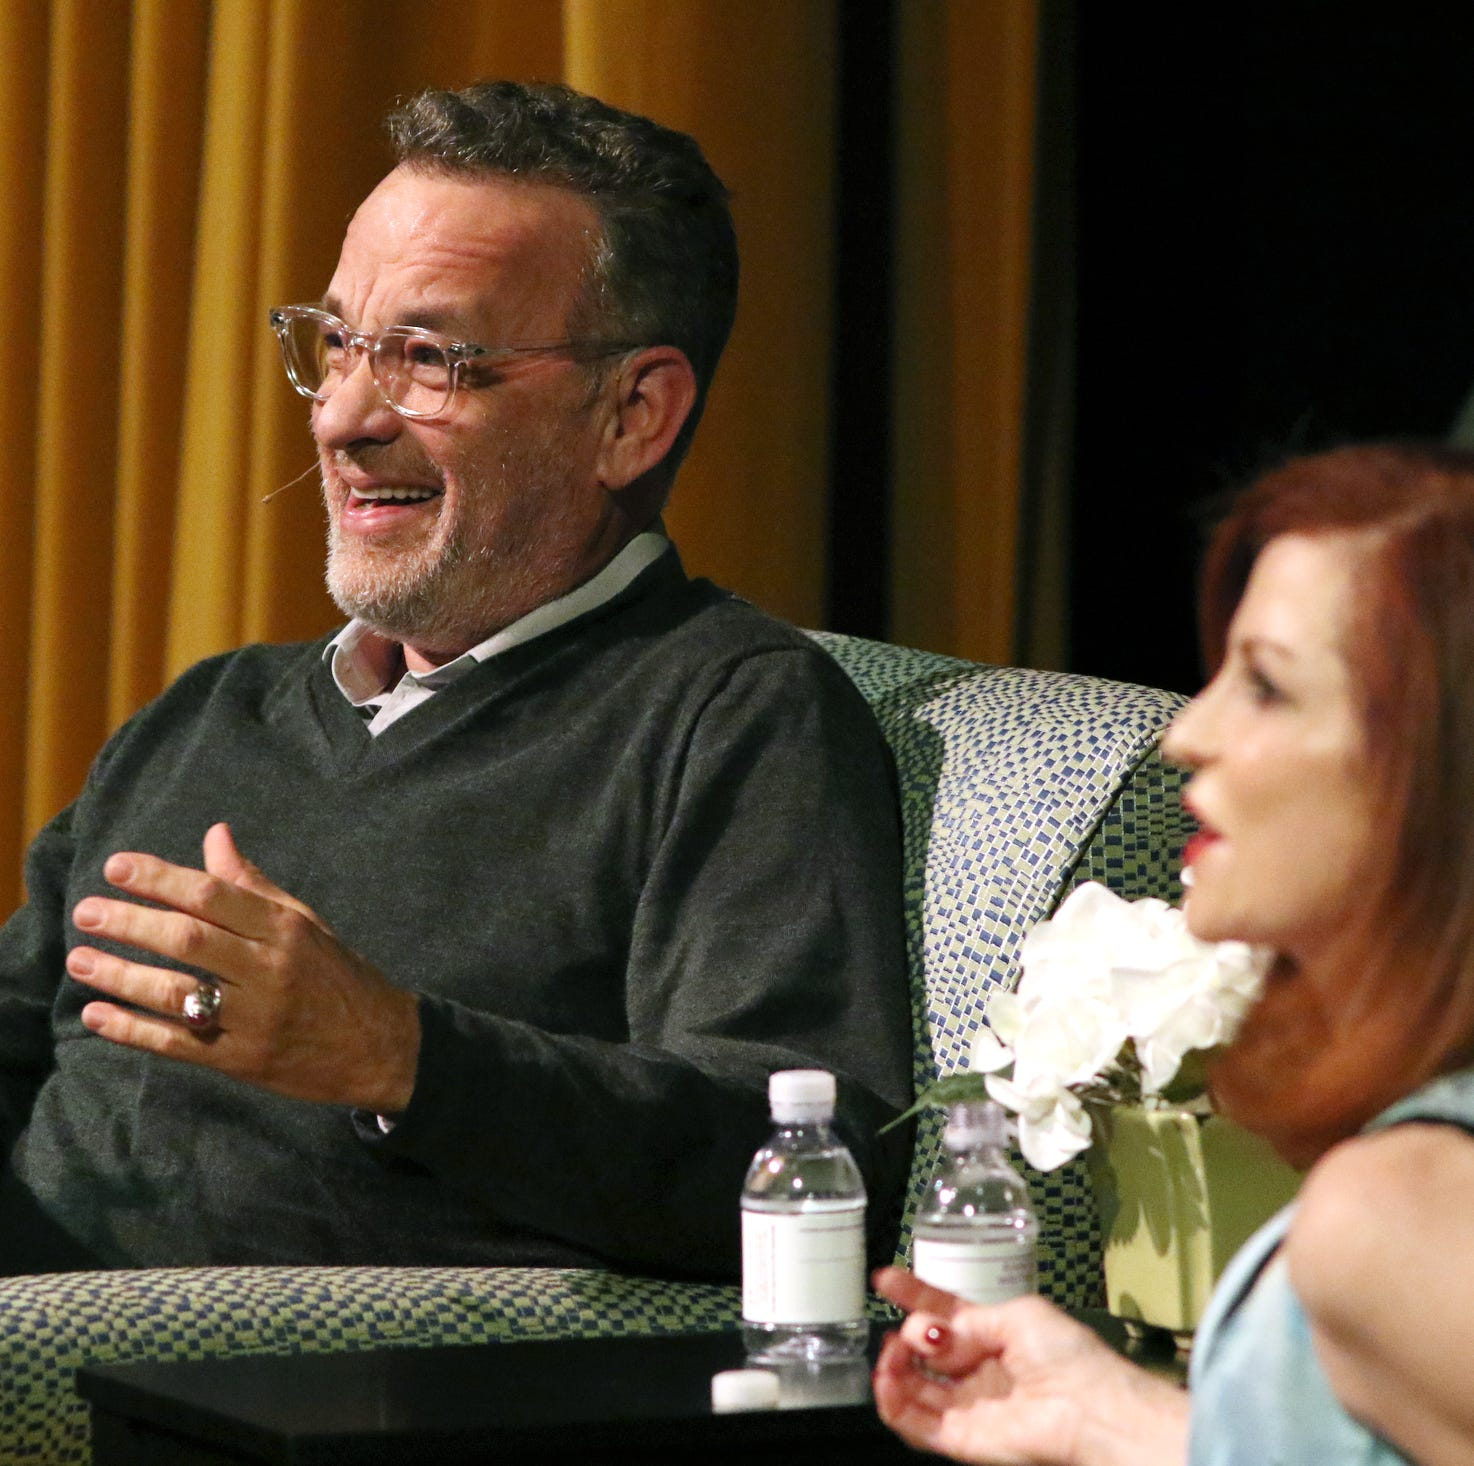 At writers festival, Tom Hanks jokes about being president, offers advice on American politics